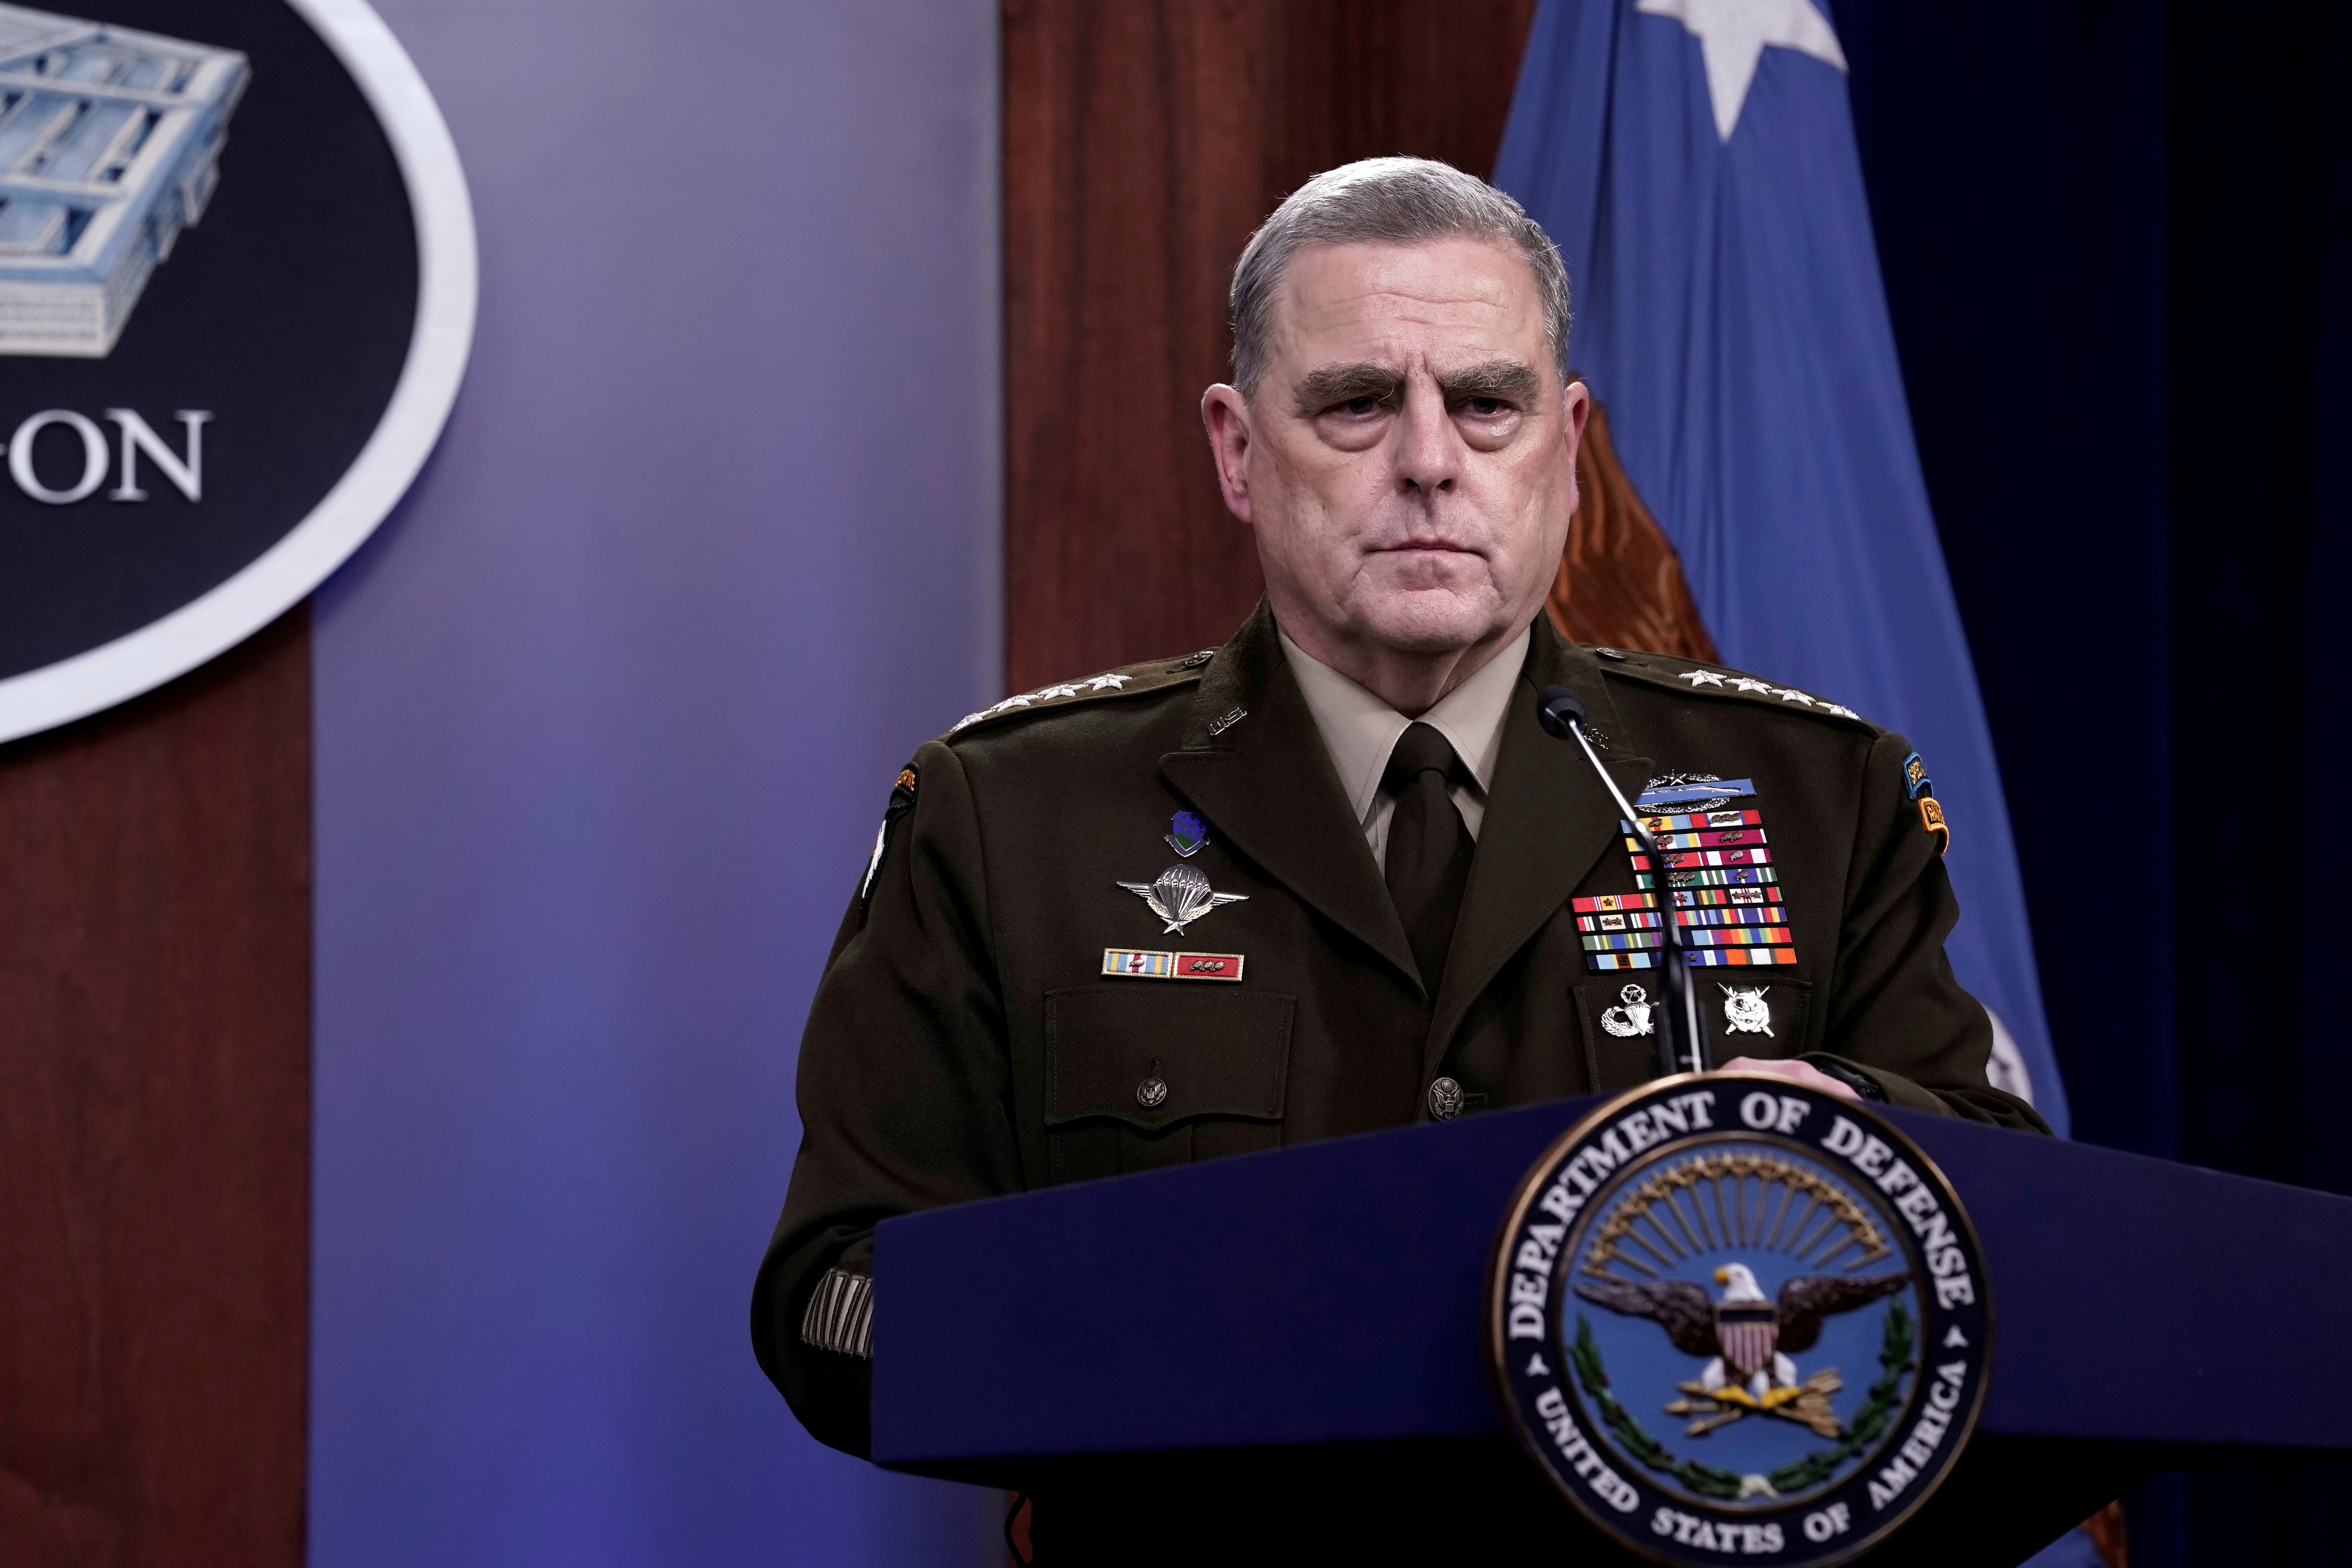 Joint Chiefs of Staff Chairman Army General Mark Milley holds a news briefing at Pentagon in Arlington, Virginia, U.S., August 18, 2021. REUTERS/Yuri Gripas/File Photo